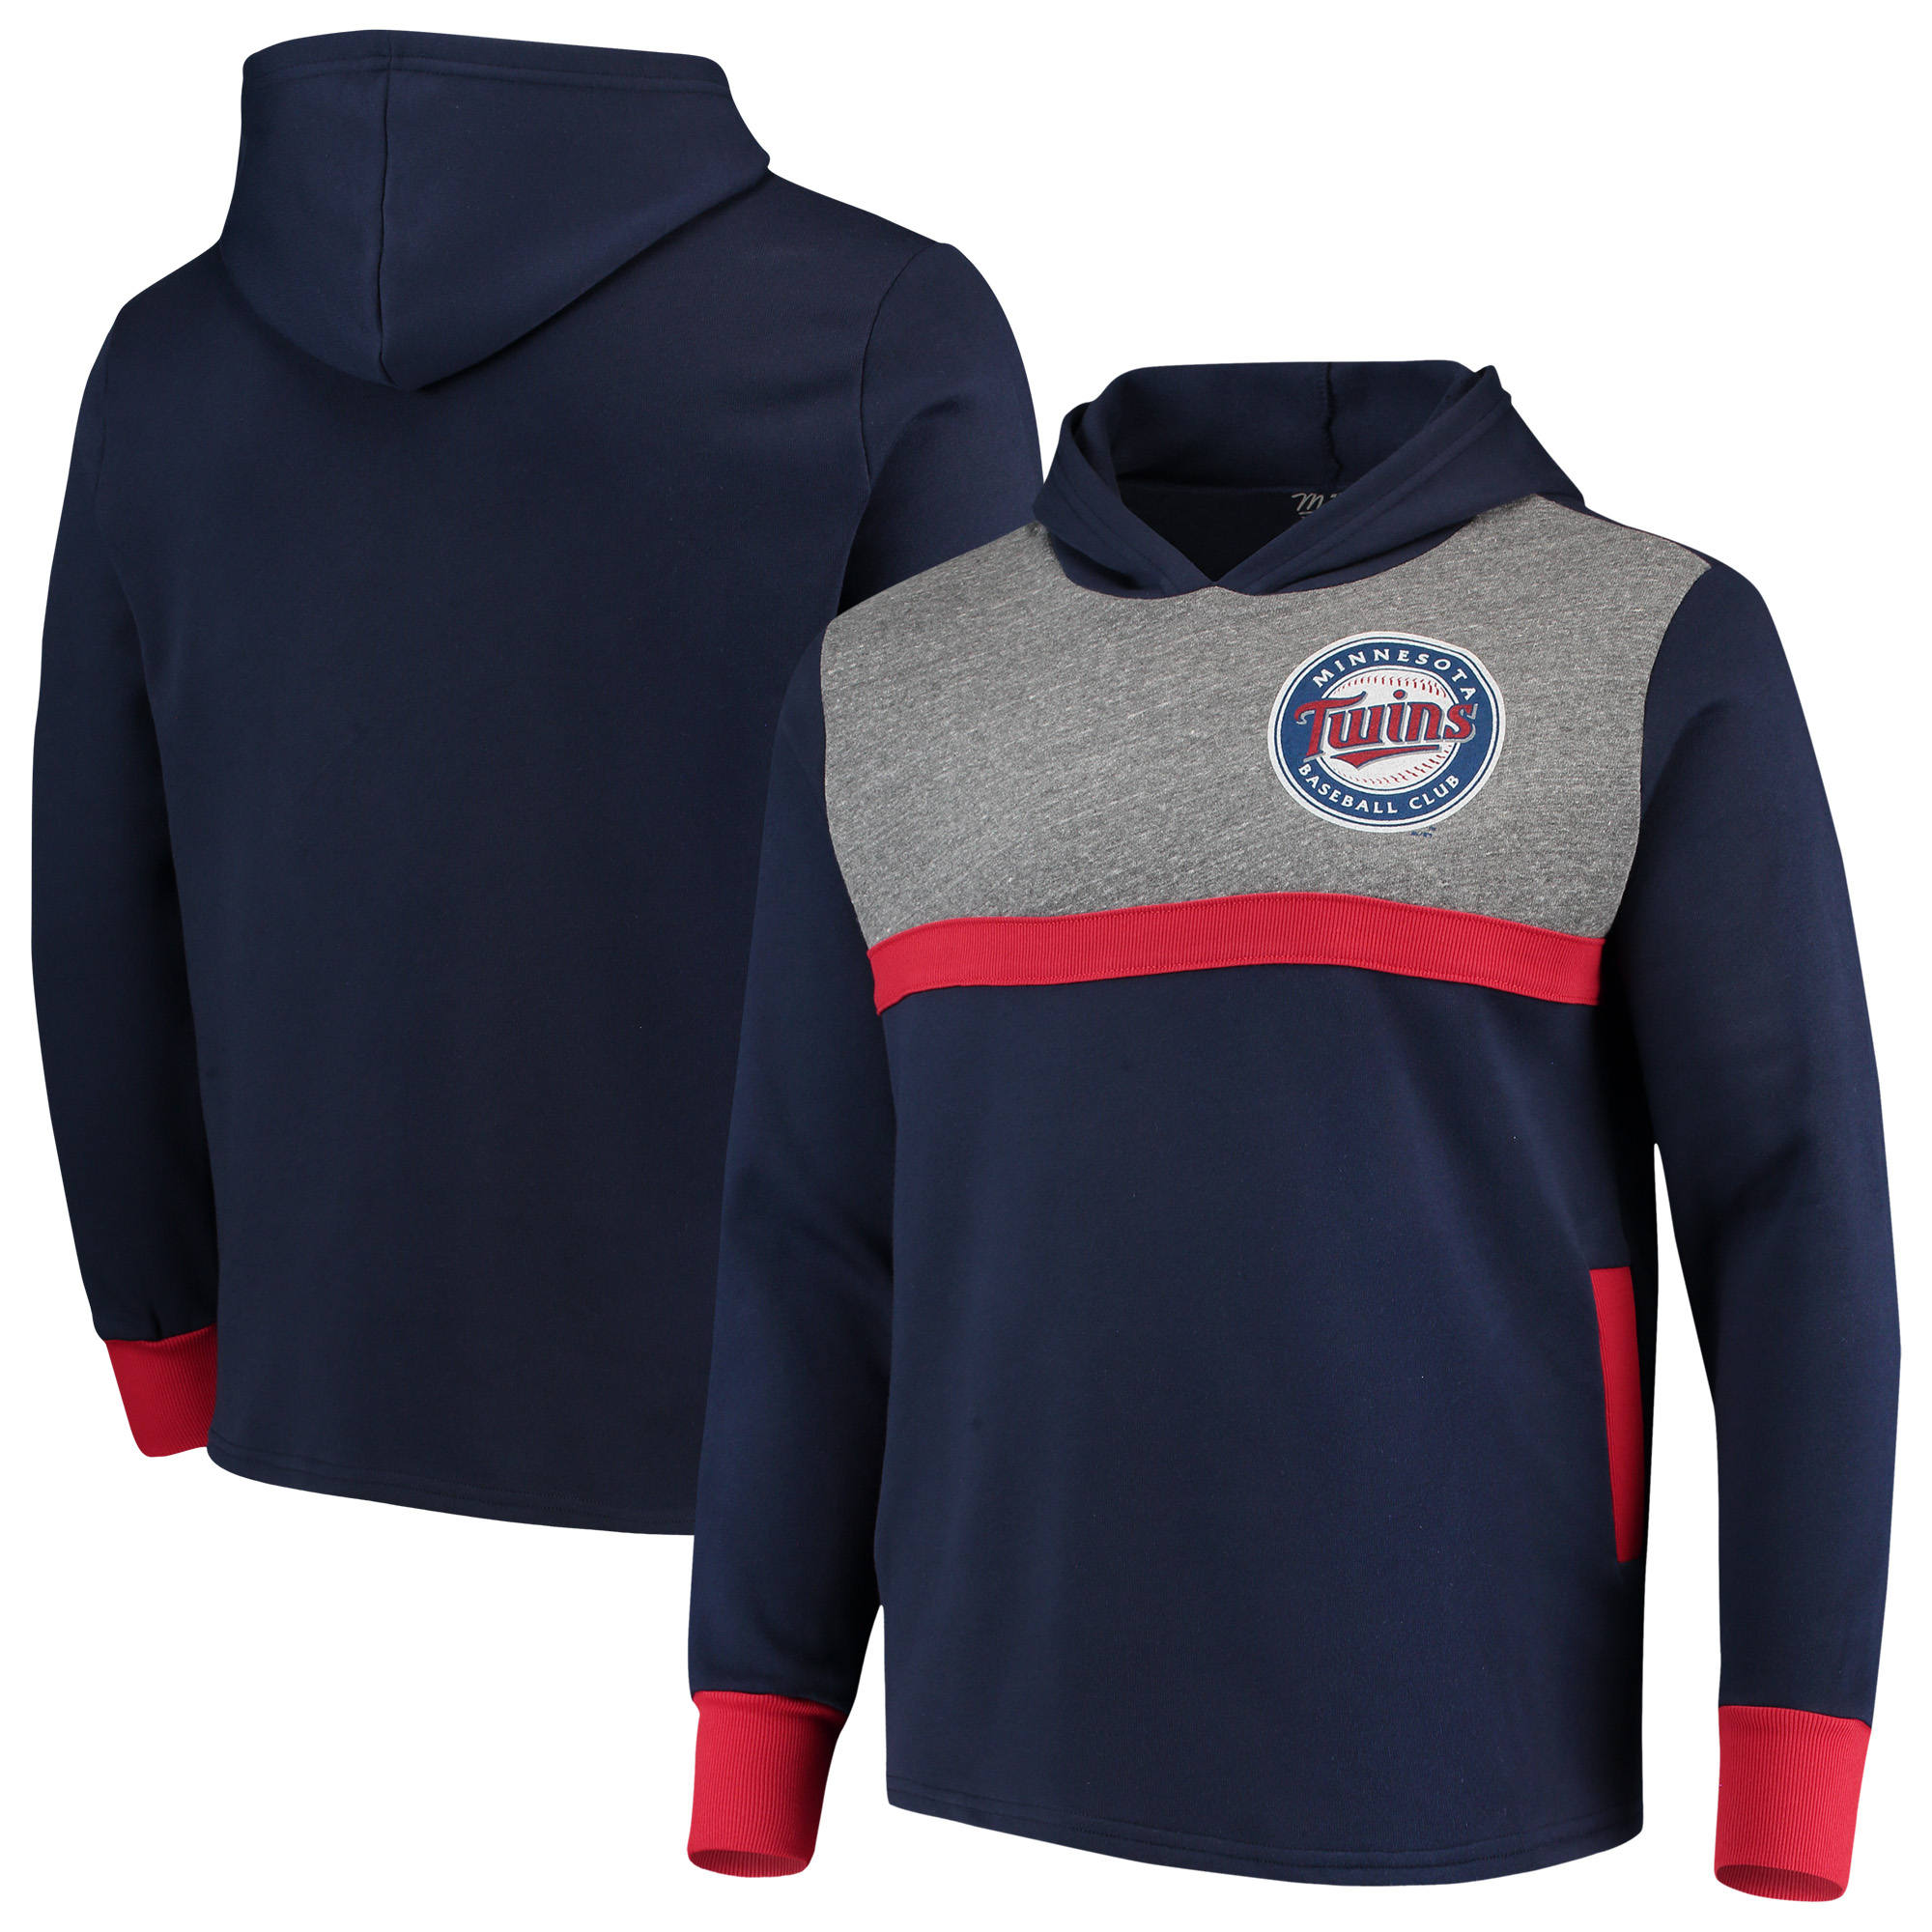 Minnesota Twins Majestic Threads Colorblocked Pullover Hoodie - Navy/Red